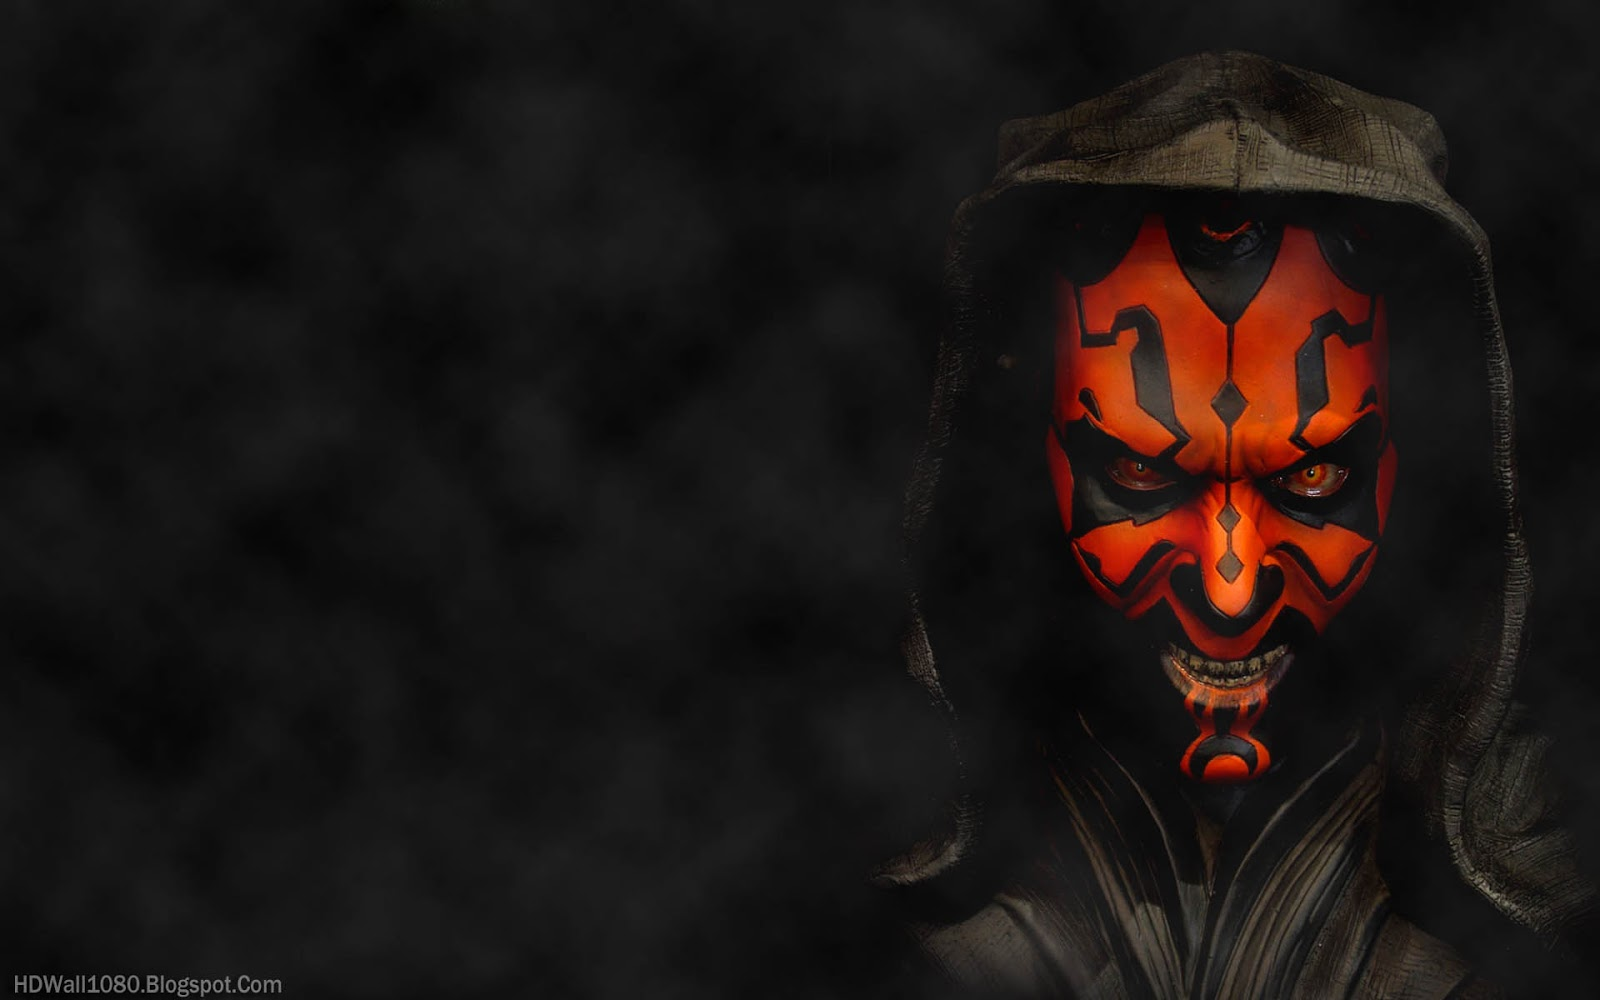 Lord Of The Sith Star Wars Wallpaper | Prime Wallpapers